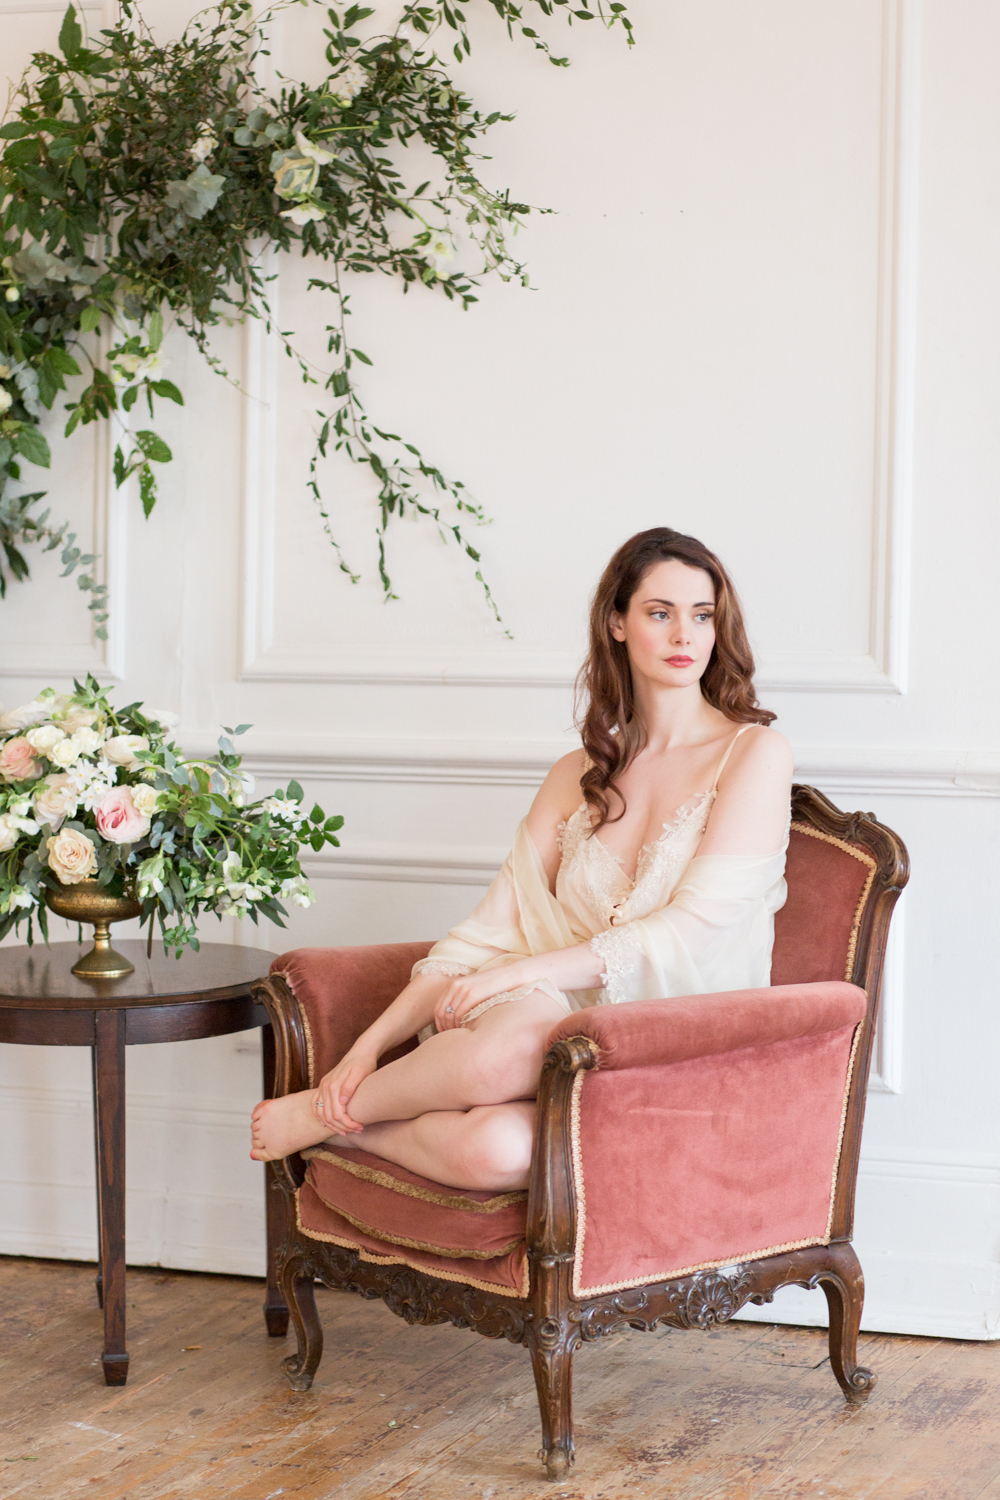 The Timeless Stylist - Heirloom Wedding Styling